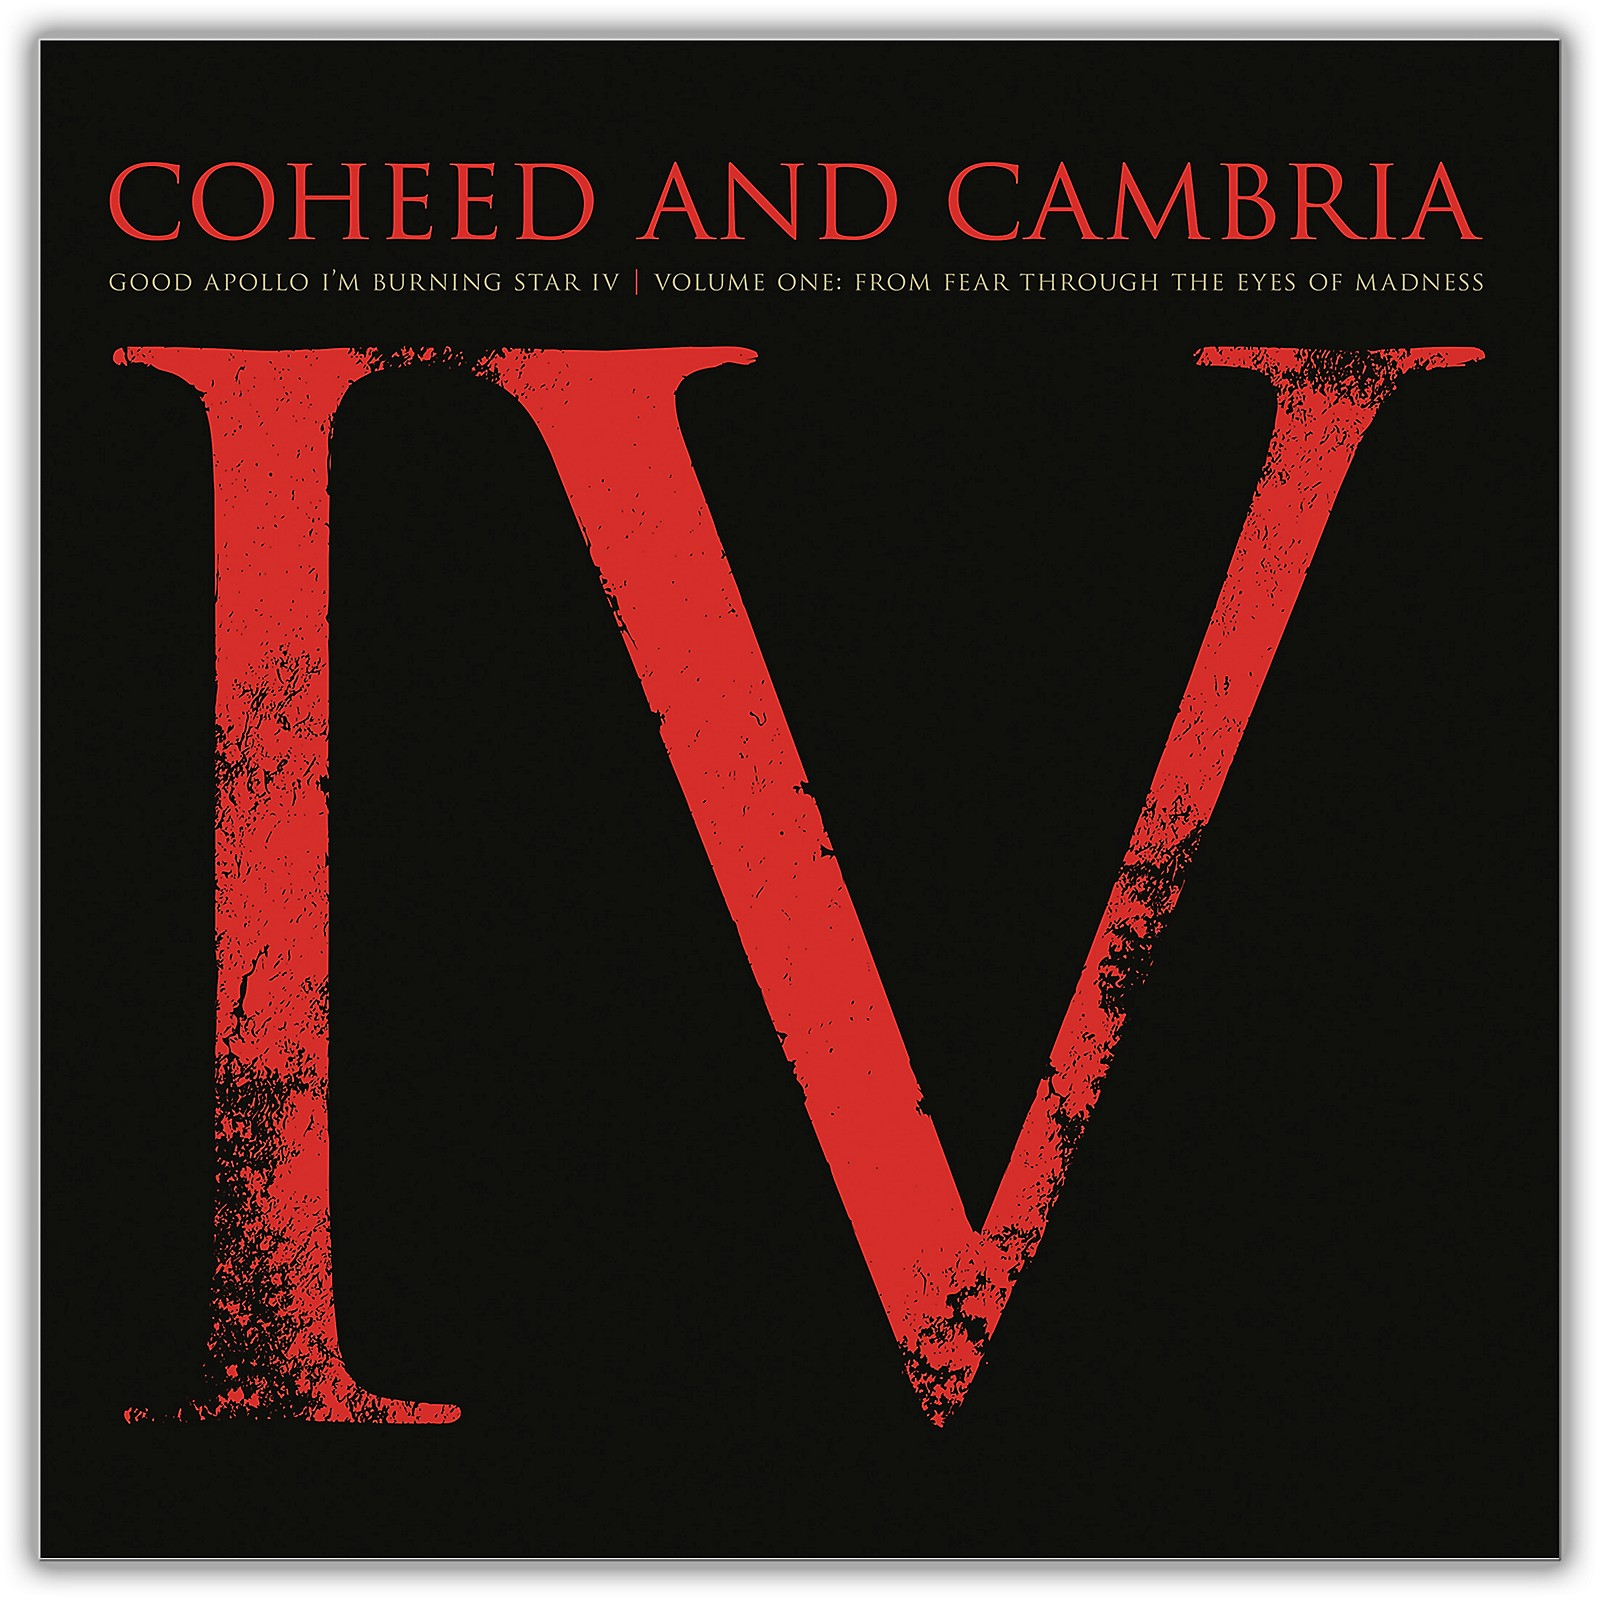 Sony Coheed and Cambria/Good Apollo I'm Burning Star IV Volume One:  From Fear Through The Eyes Of Madness (2 LP)